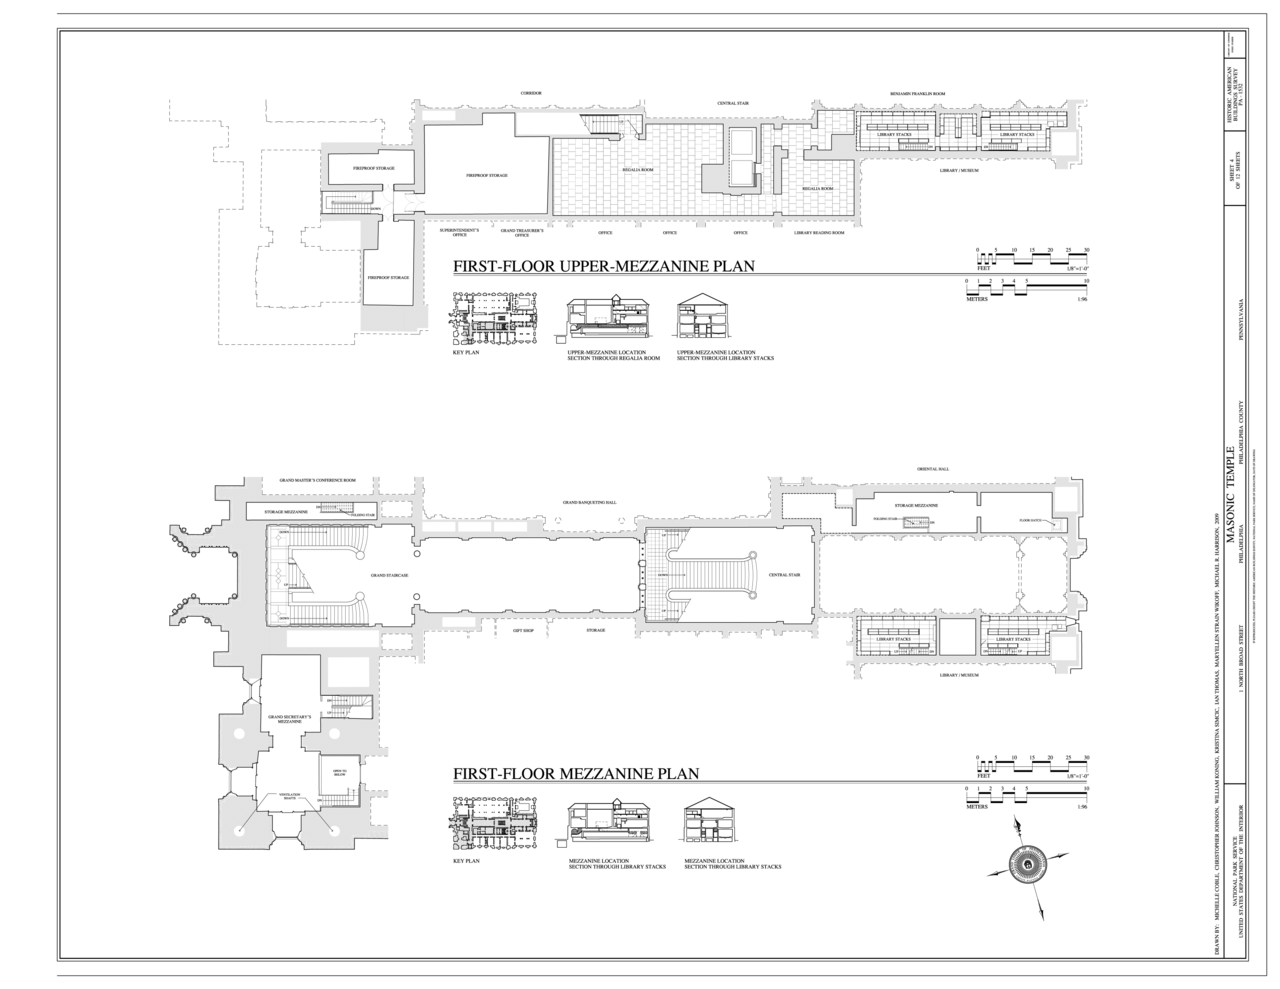 File first floor upper mezzanine plan and first floor for Mezzanine plan